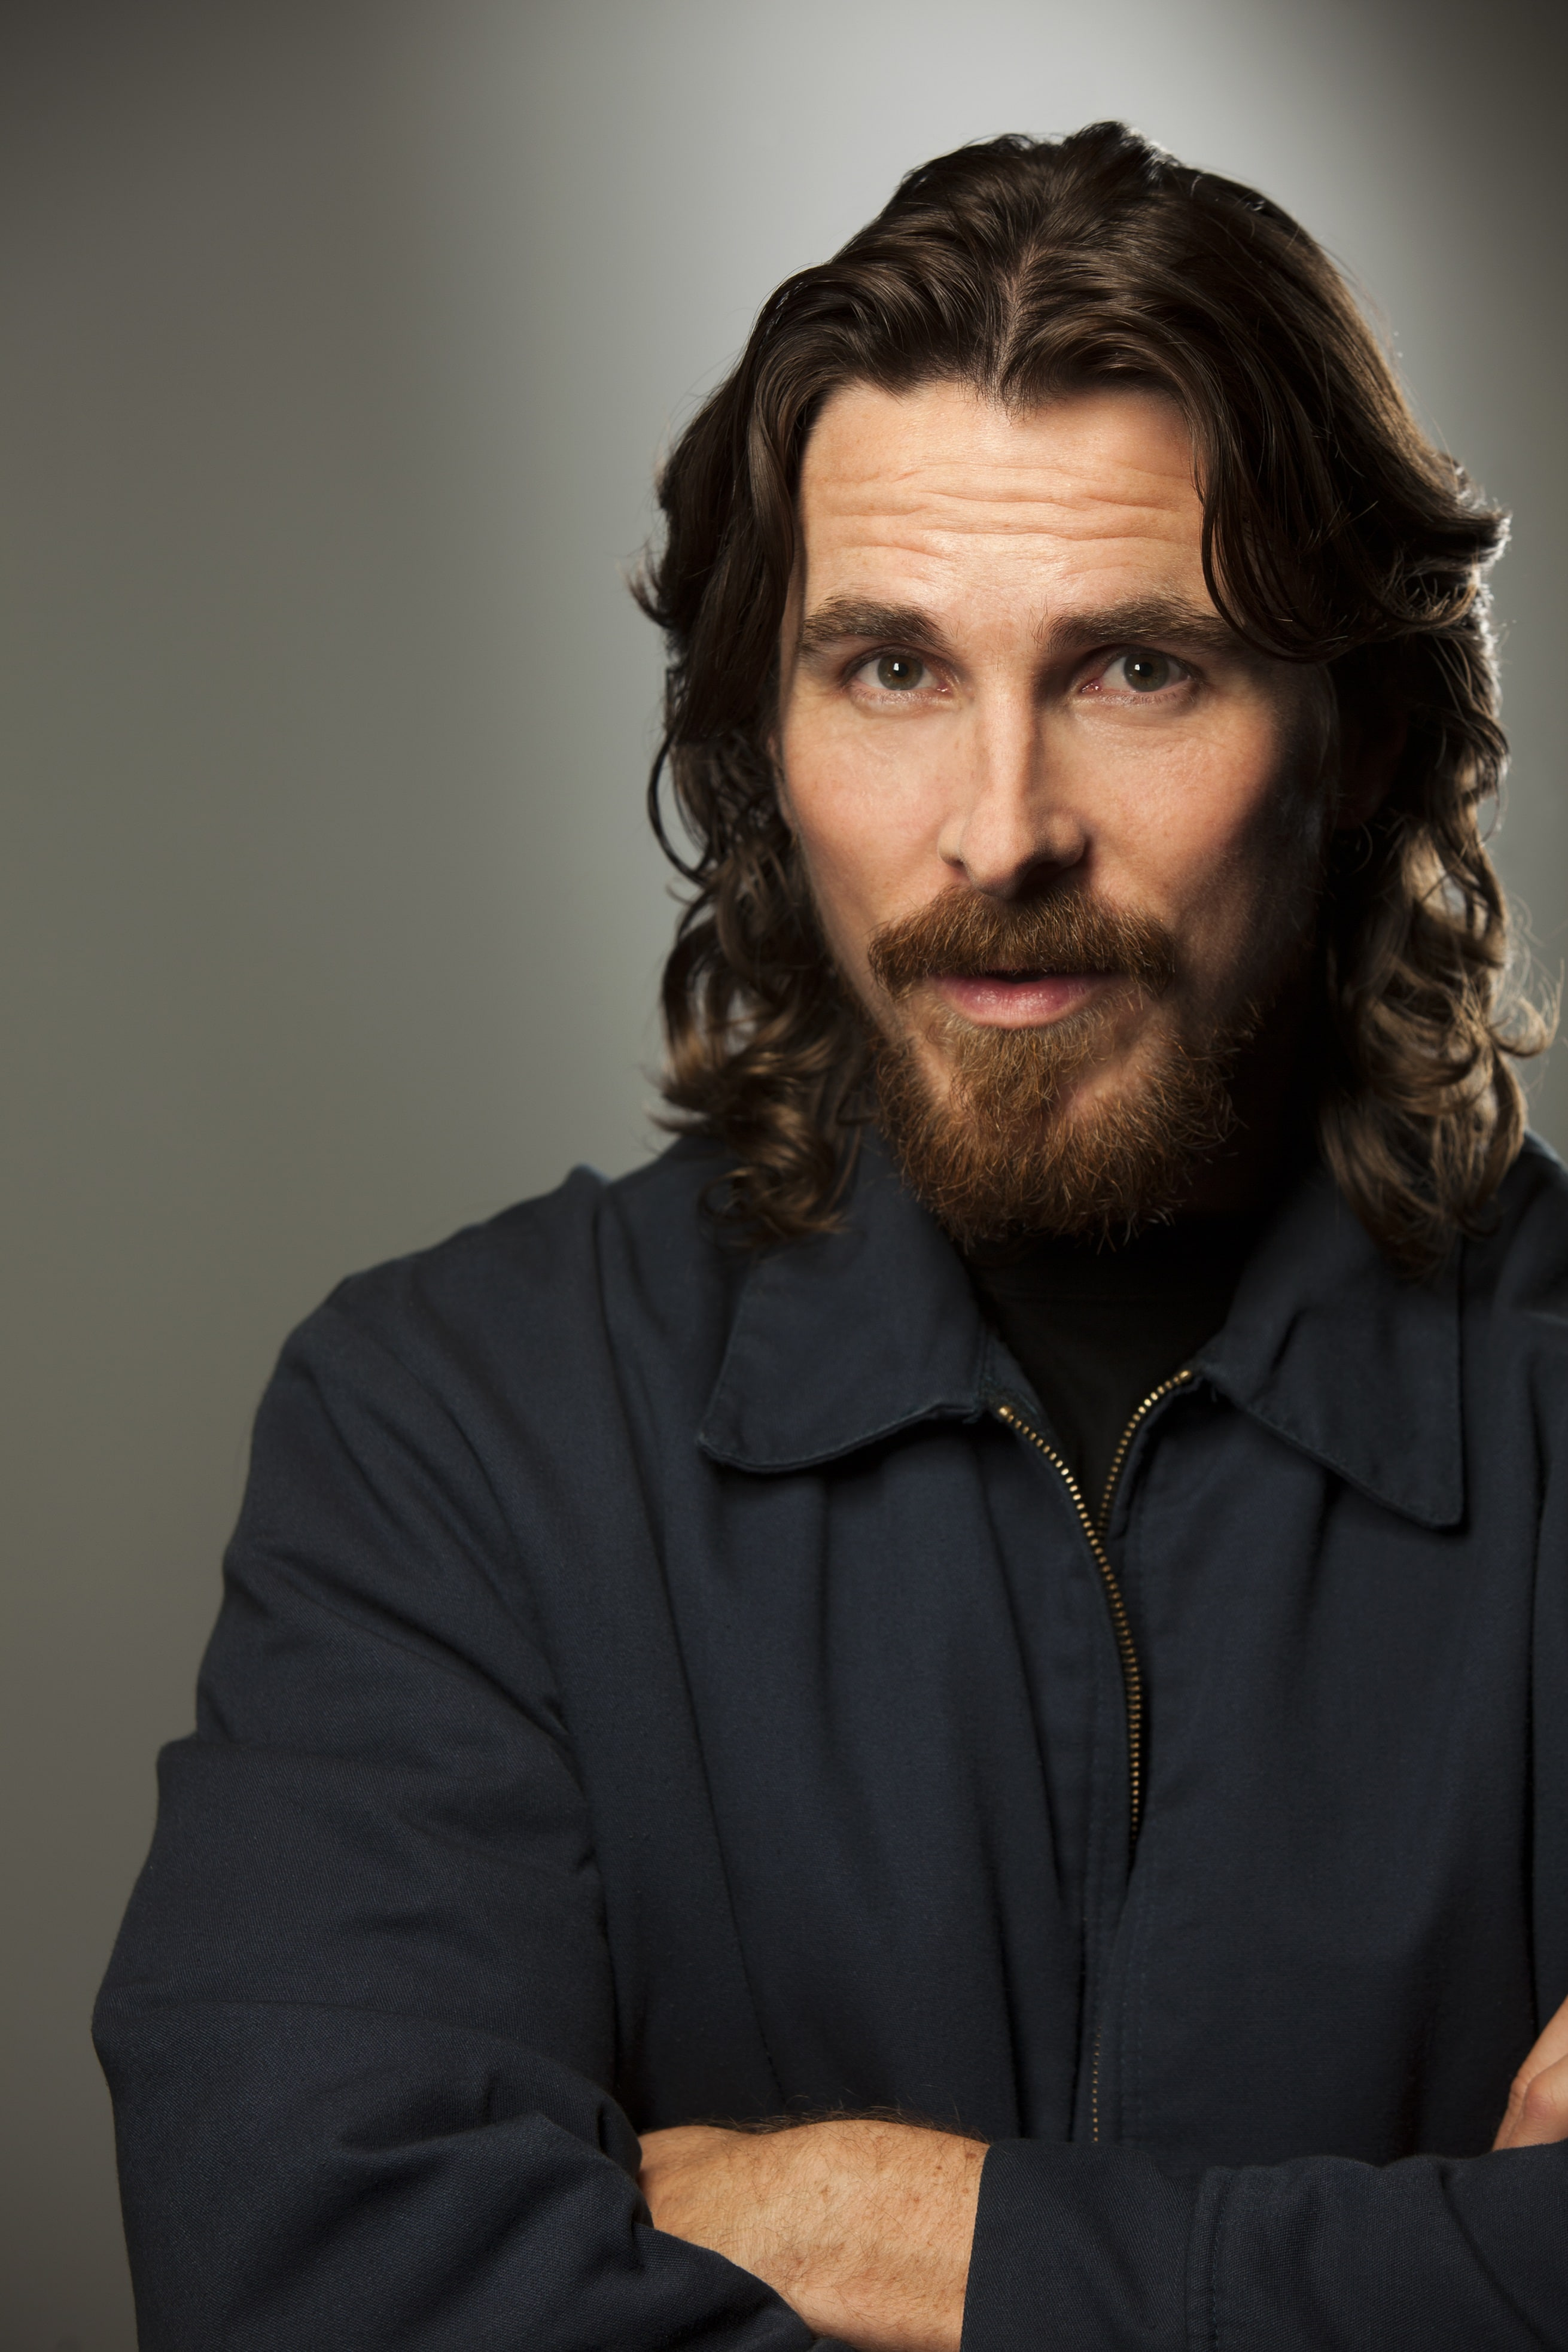 Christian Bale For mobile